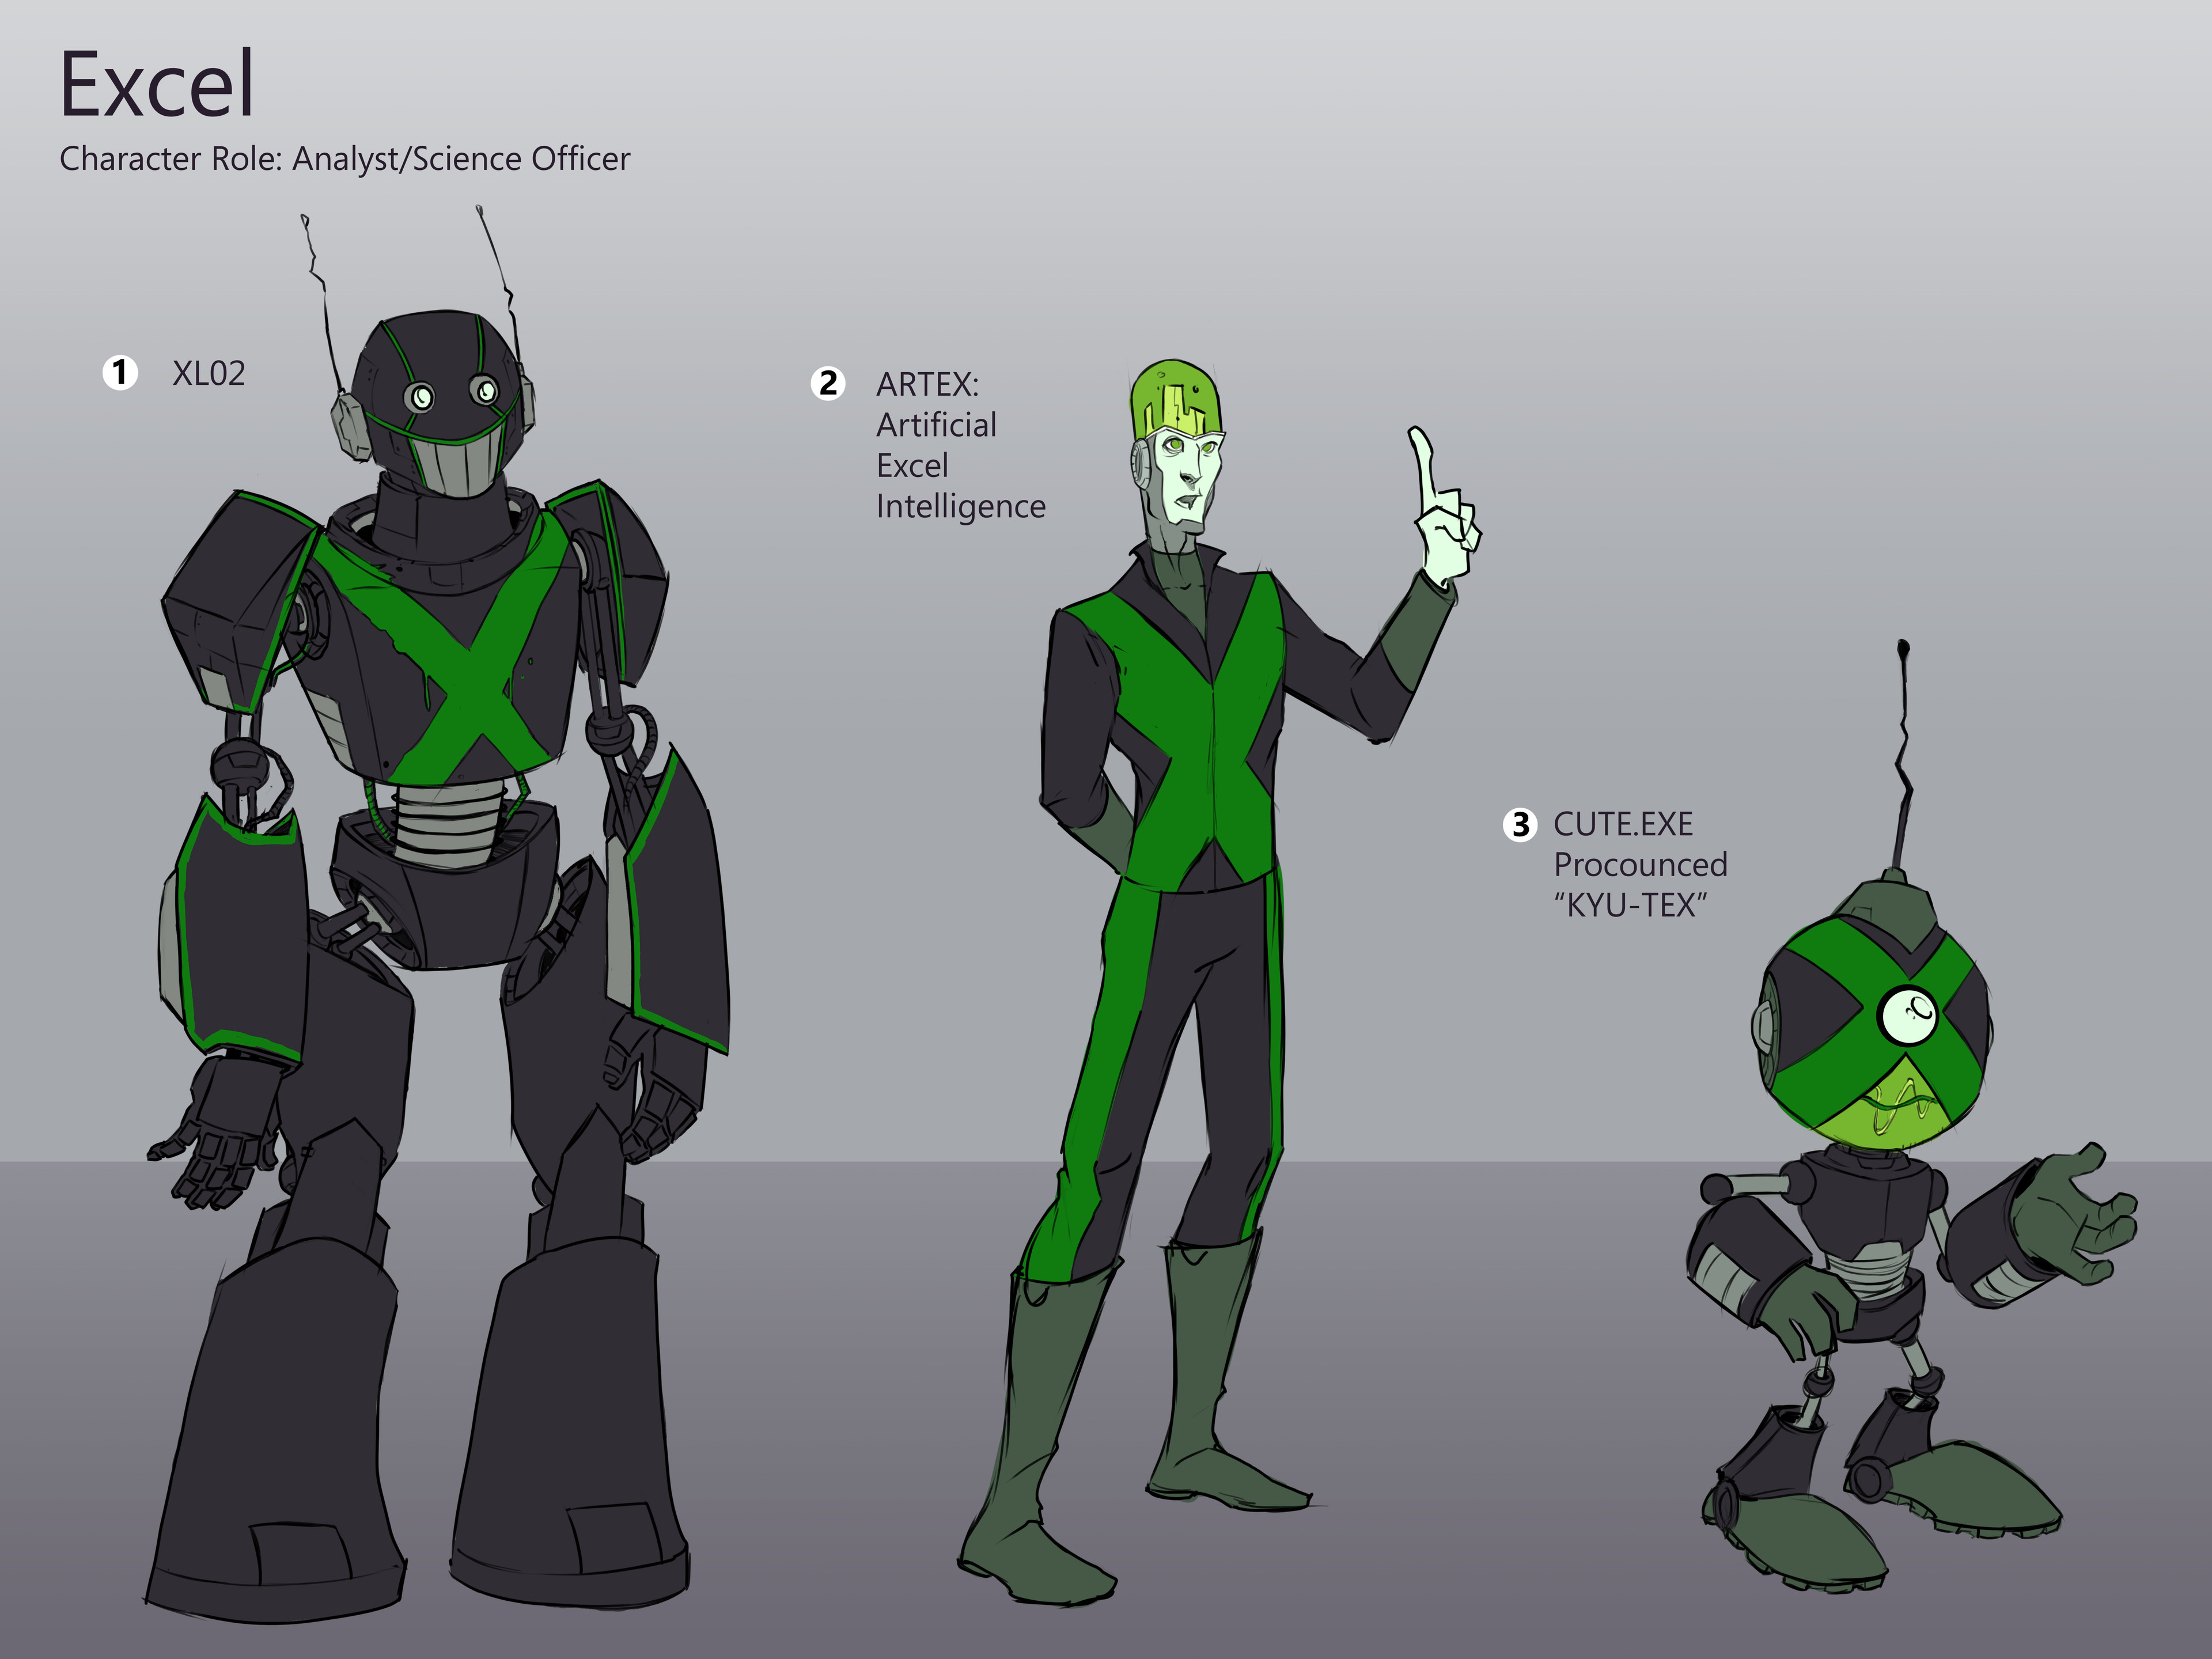 Refined character designs and color flats based on the Excel branding guidelines